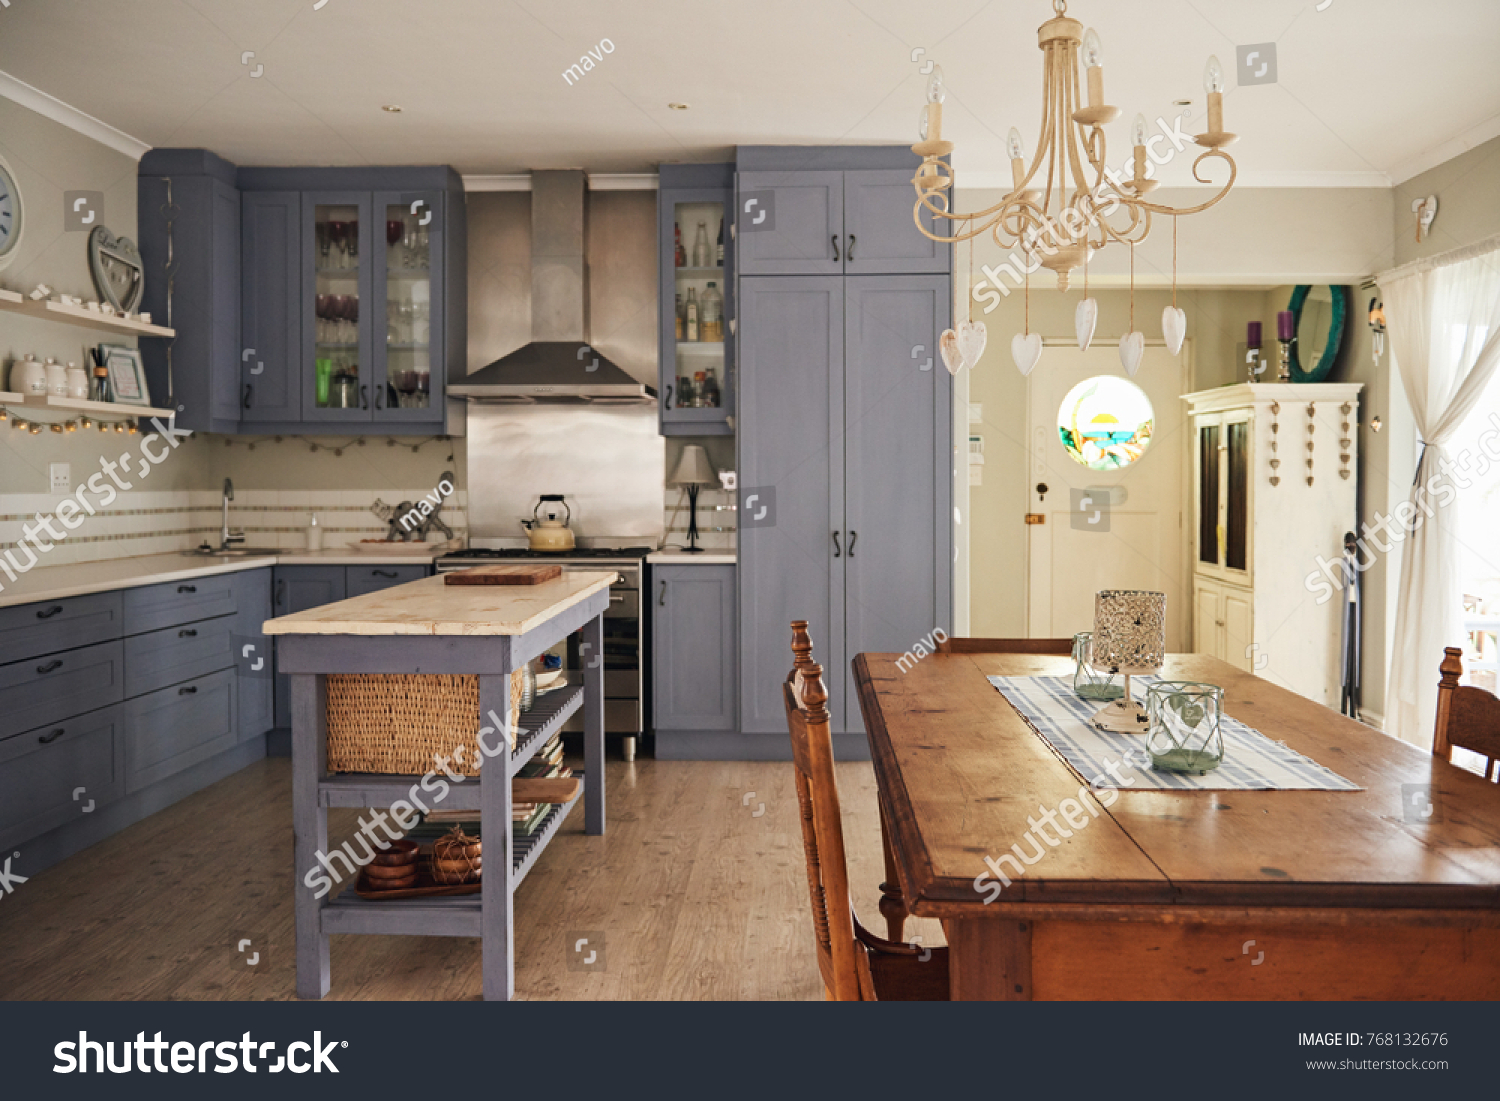 Interior Country Style Kitchen Island Dining Stock Image